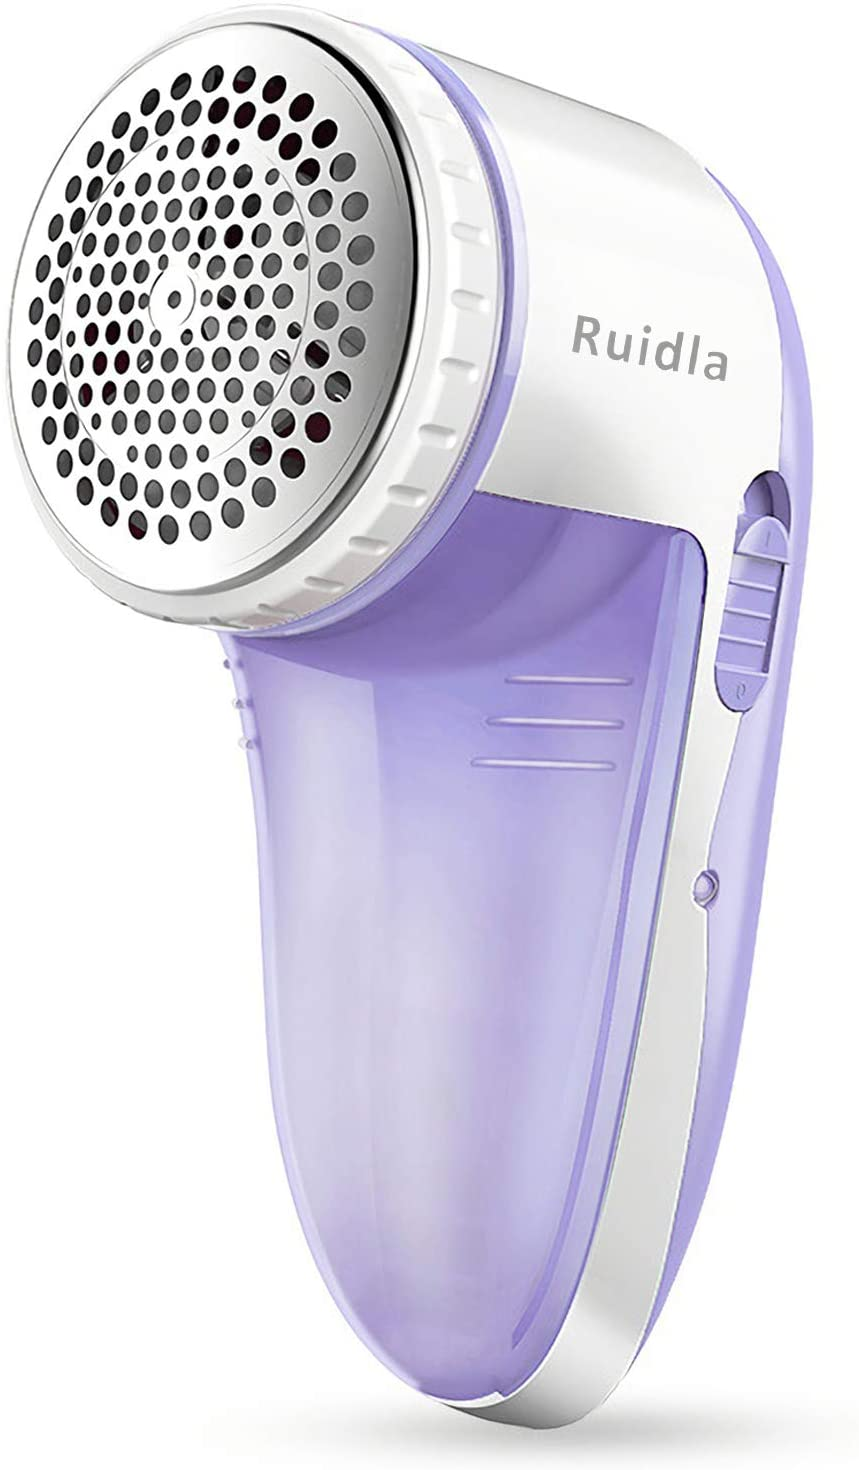 Ruidla Fabric Shaver - Electric Lint Remover